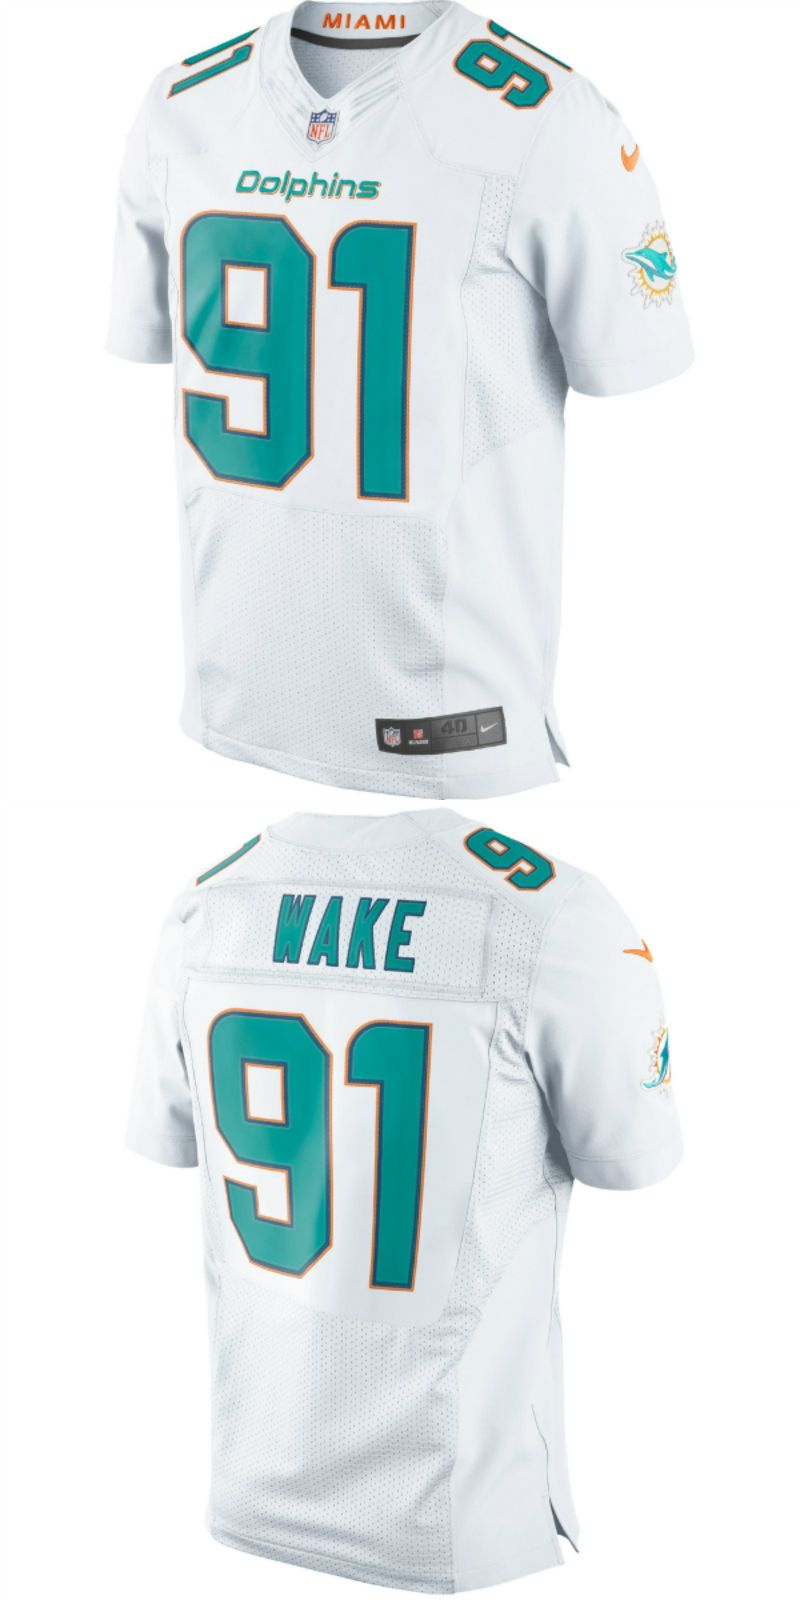 sale retailer 7496c d202d UP TO 70% OFF. Cameron Wake Miami Dolphins Nike Elite Jersey ...